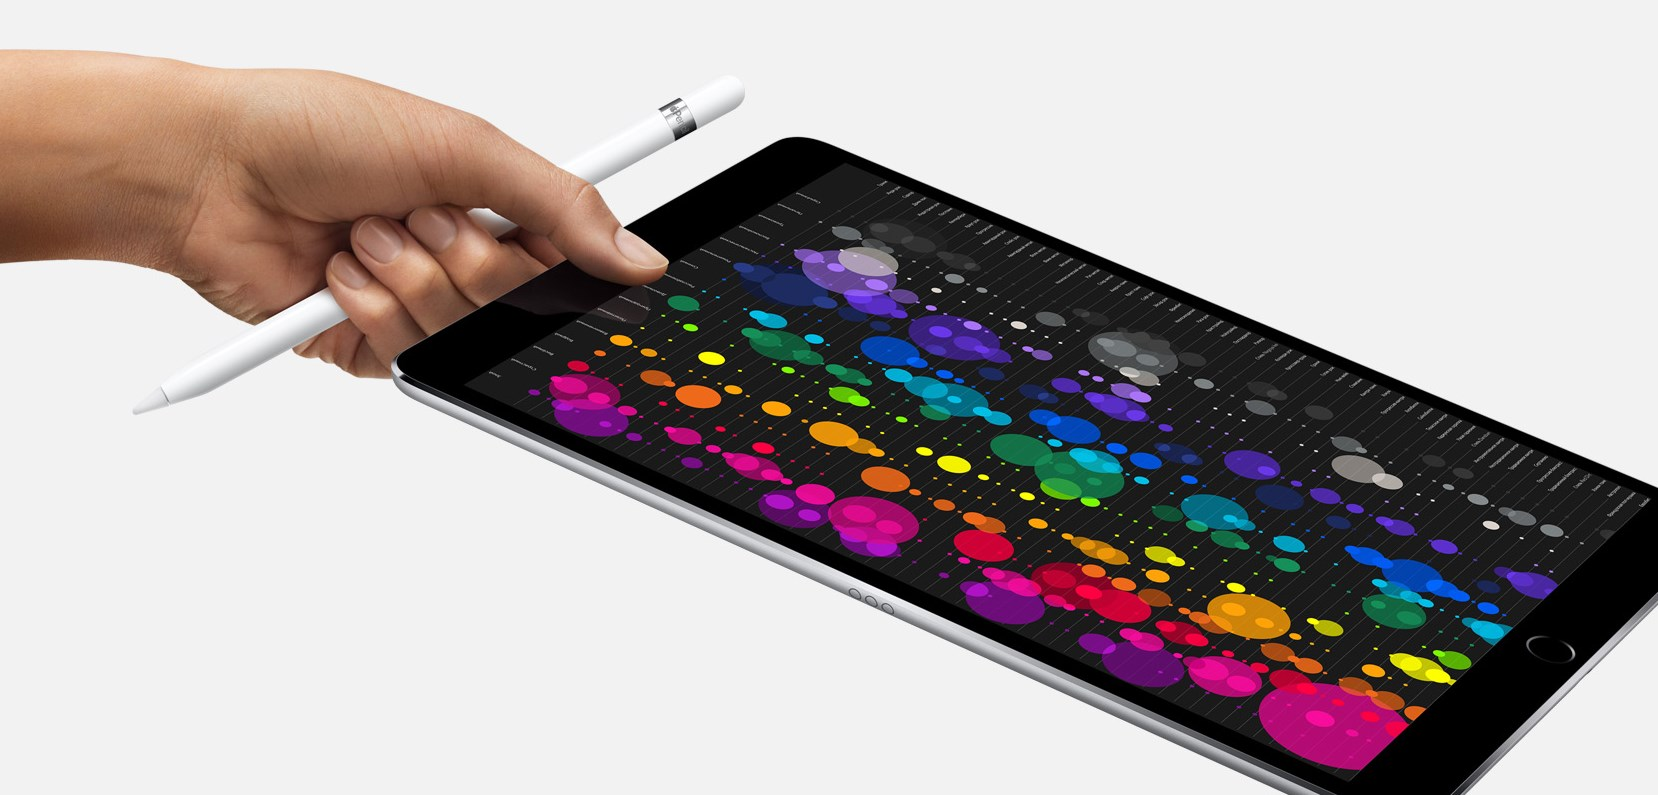 айпад Apple iPad Pro 10.5